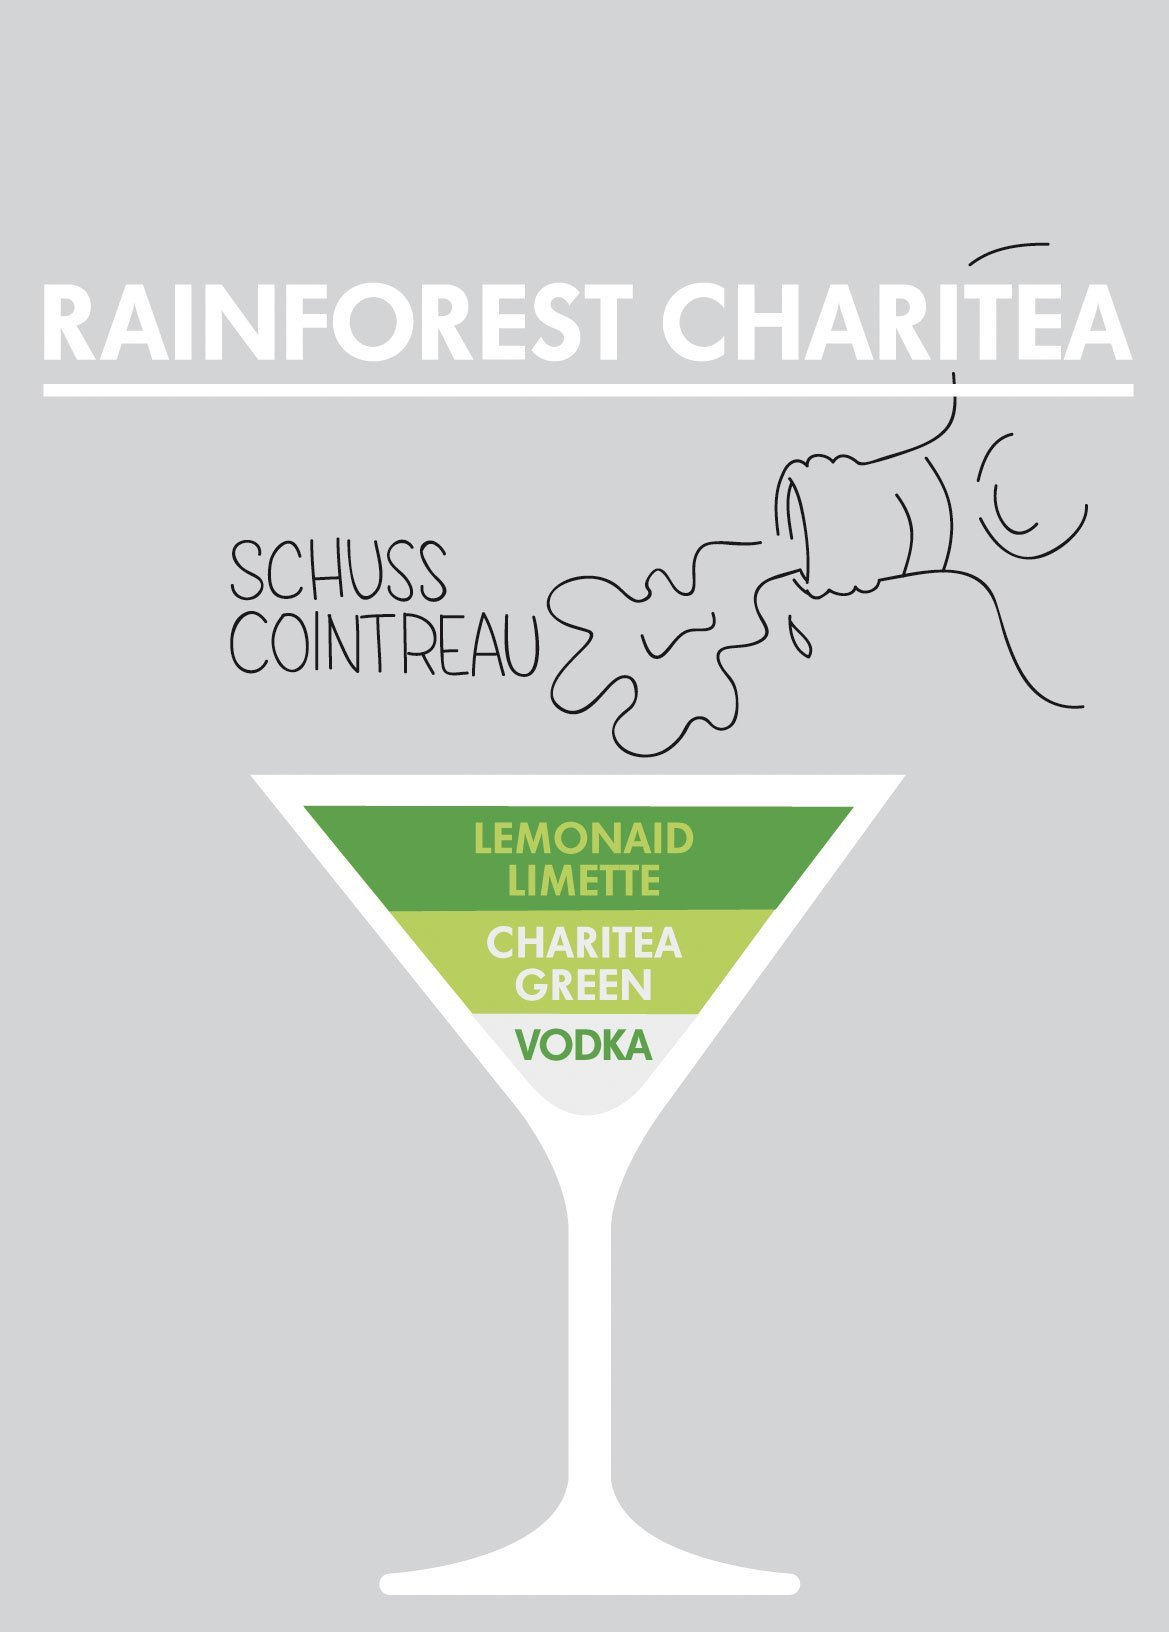 Bild_Cocktail_Illus_Rainforest_ChariTea_Teaser